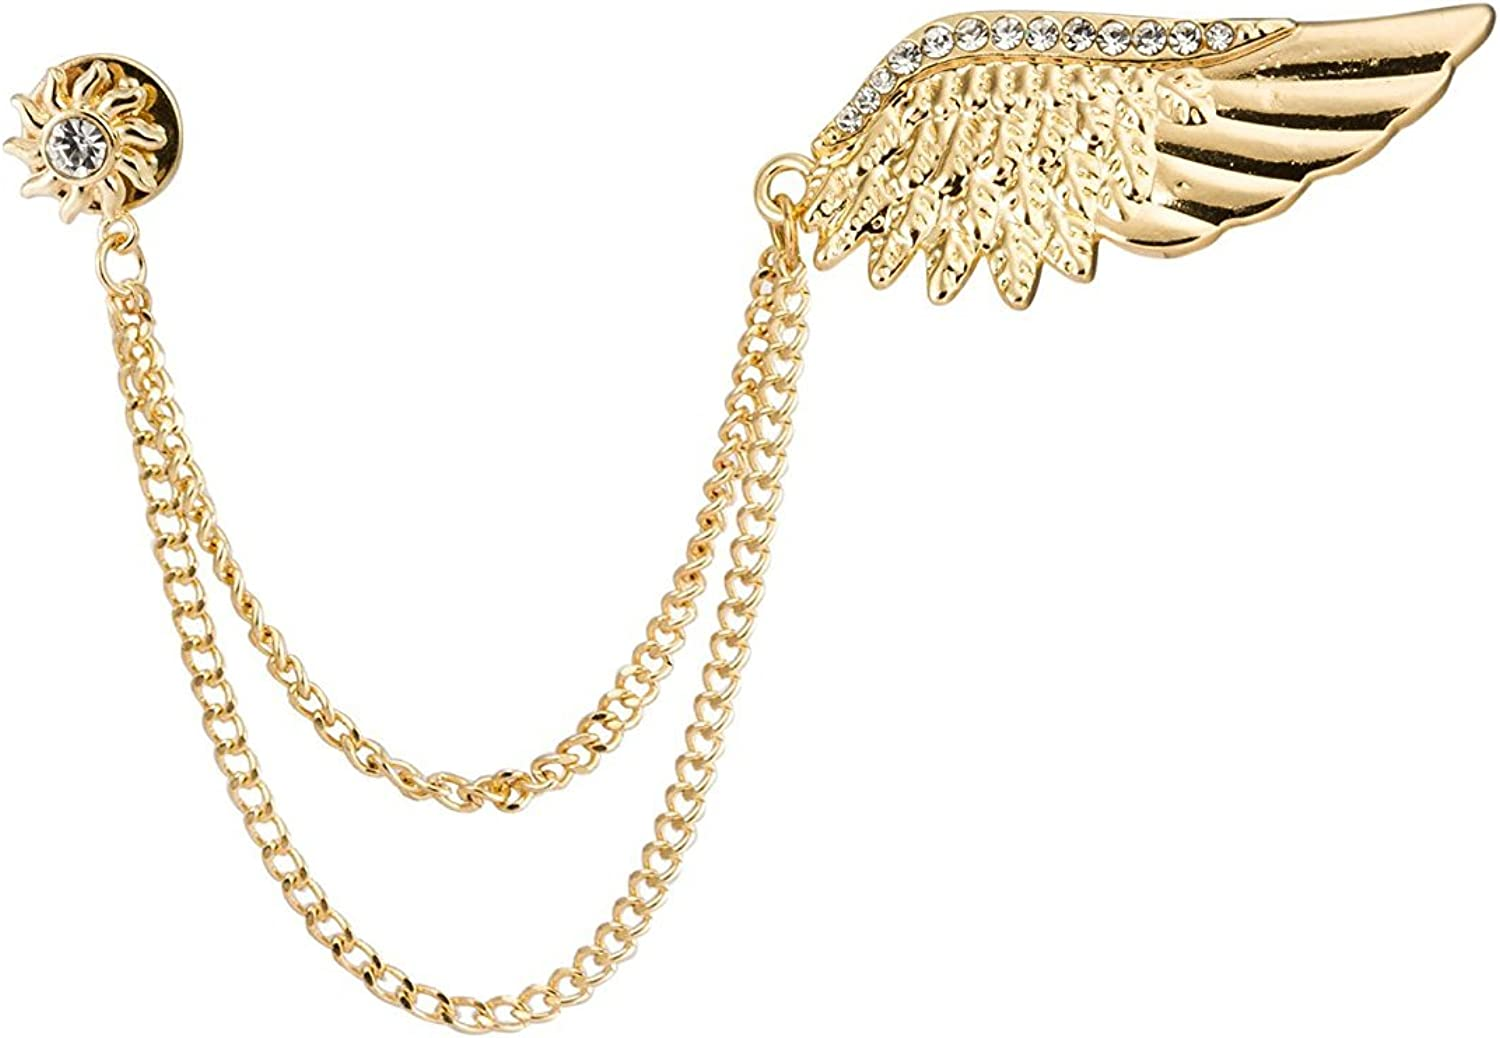 Knighthood Golden Max 49% OFF Swarovski Wing with Brooch Chain Golde Oakland Mall Hanging